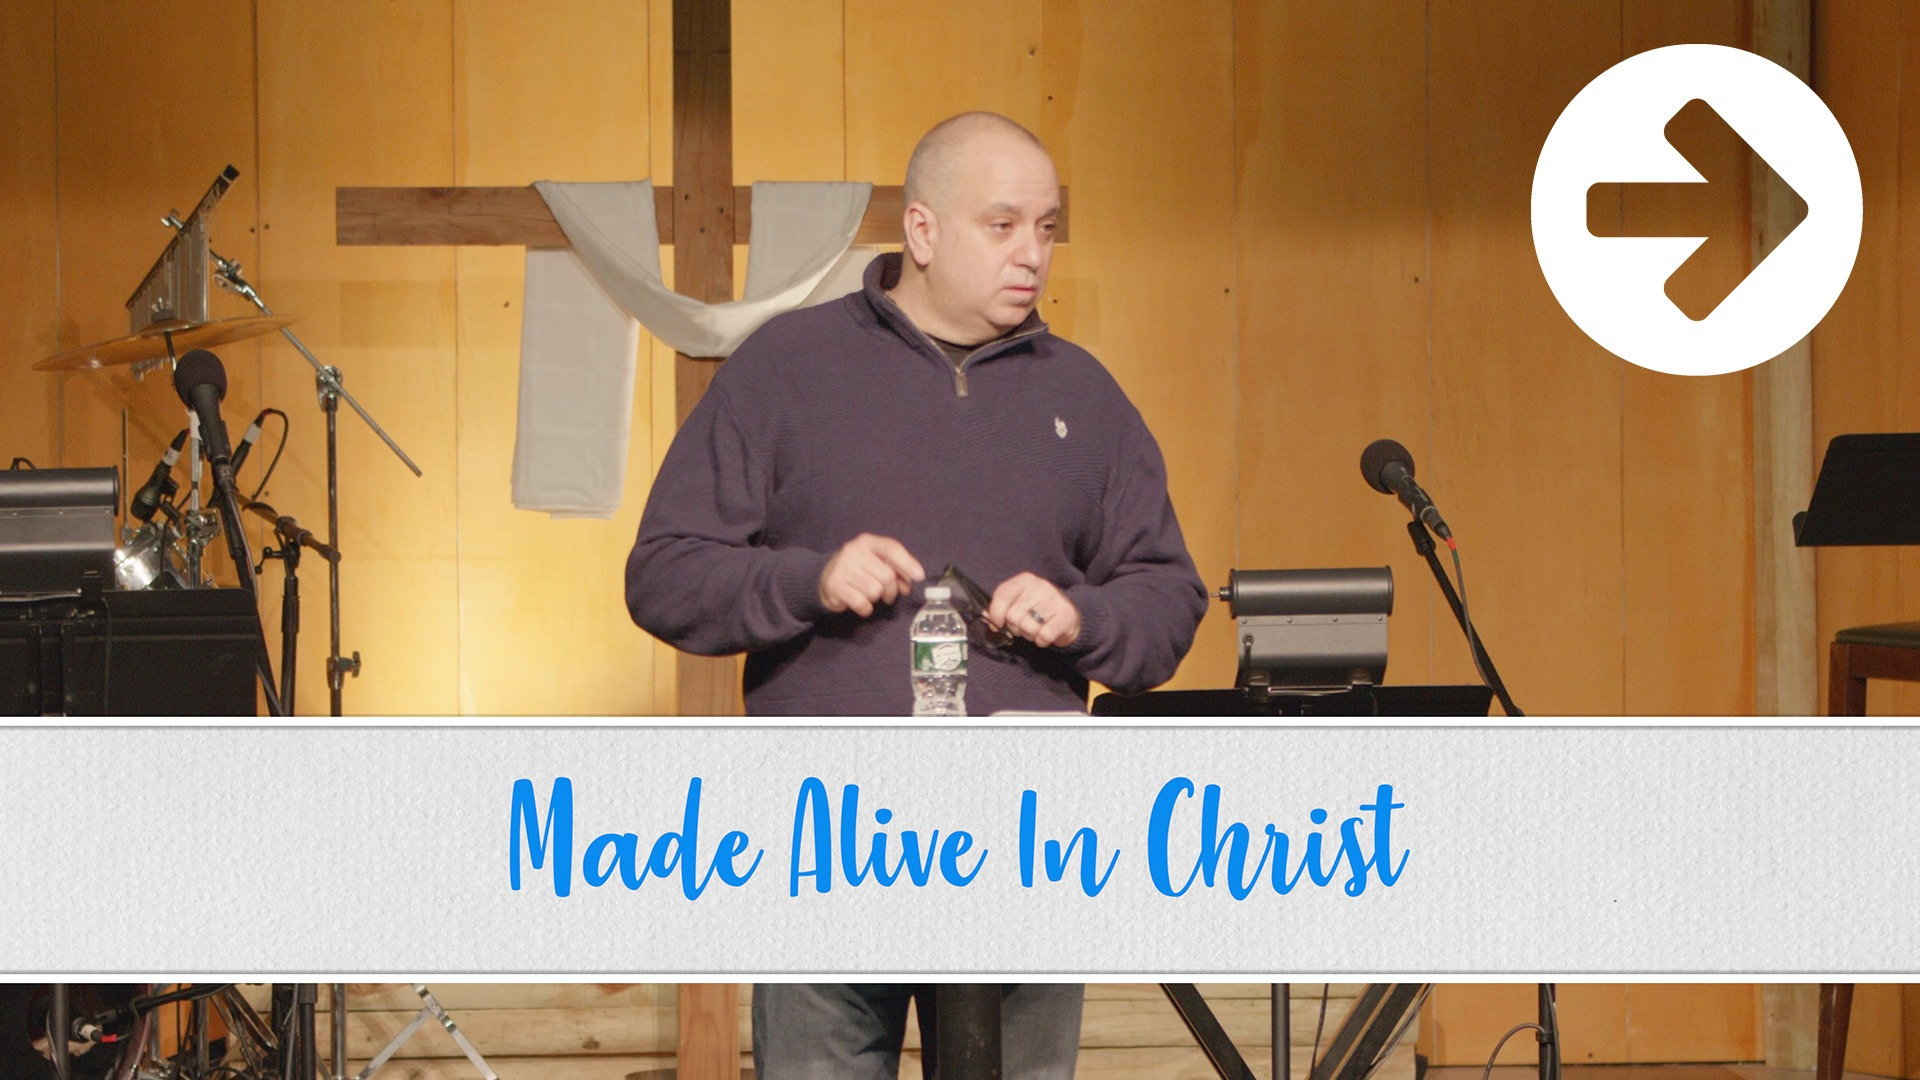 Made Alive In Christ Image